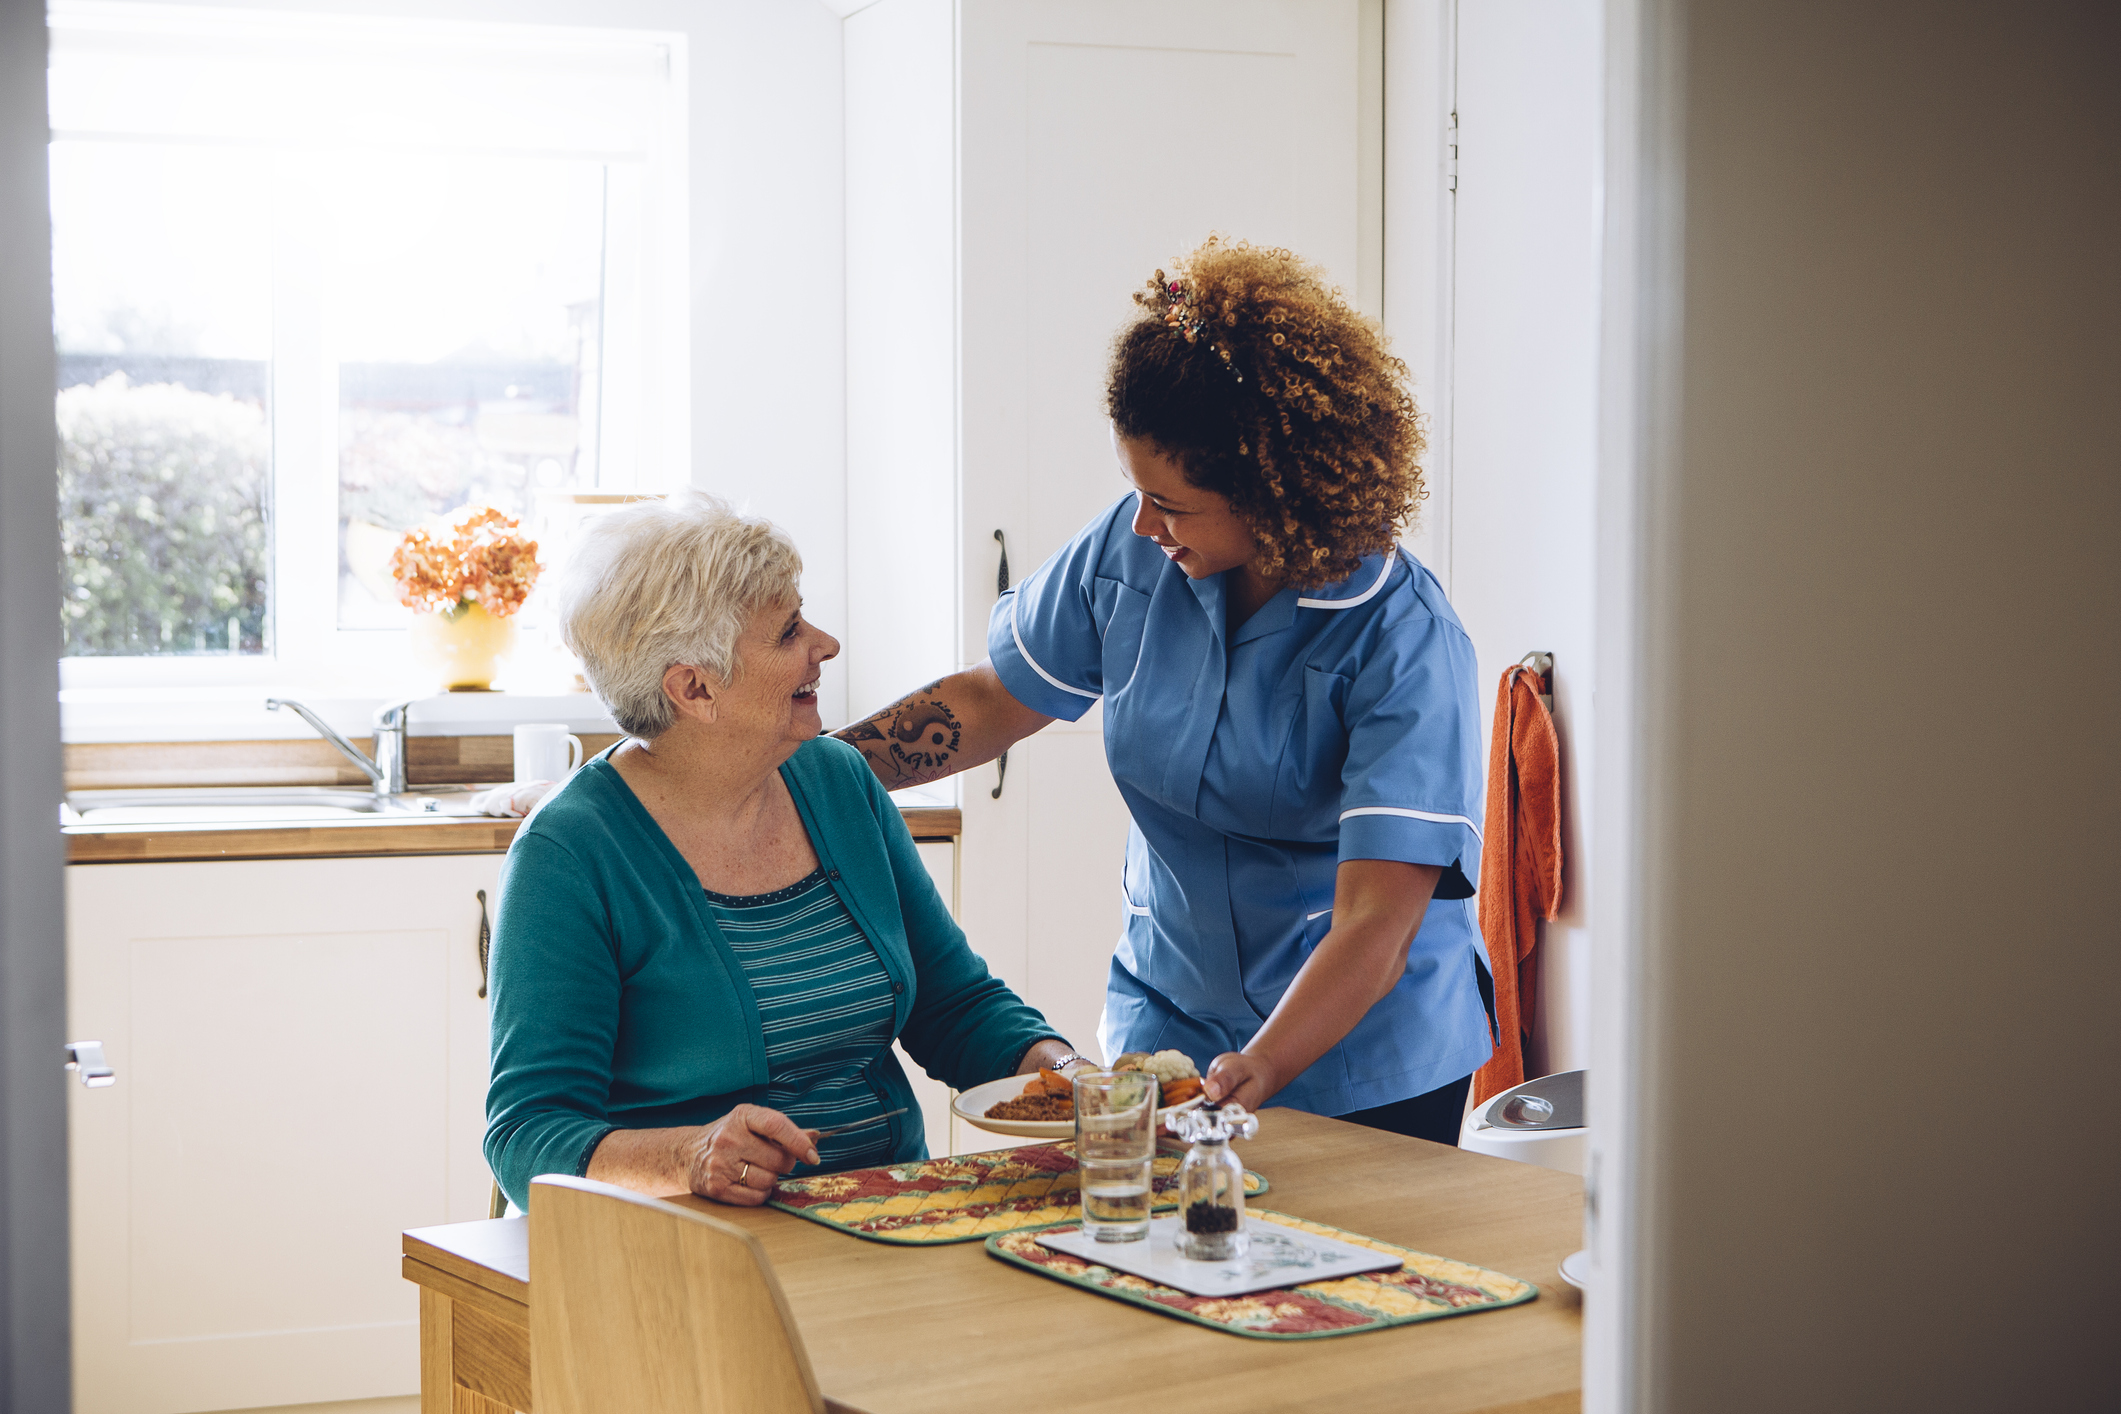 LIVE-IN CHHAs - Reside with the patient round the clock, providing continuity of care and developing a fulfilling, nurturing relationships with the patient. This live-in option is more cost-effective than hourly care when there is a need for more than 8 hours of patient care per day.